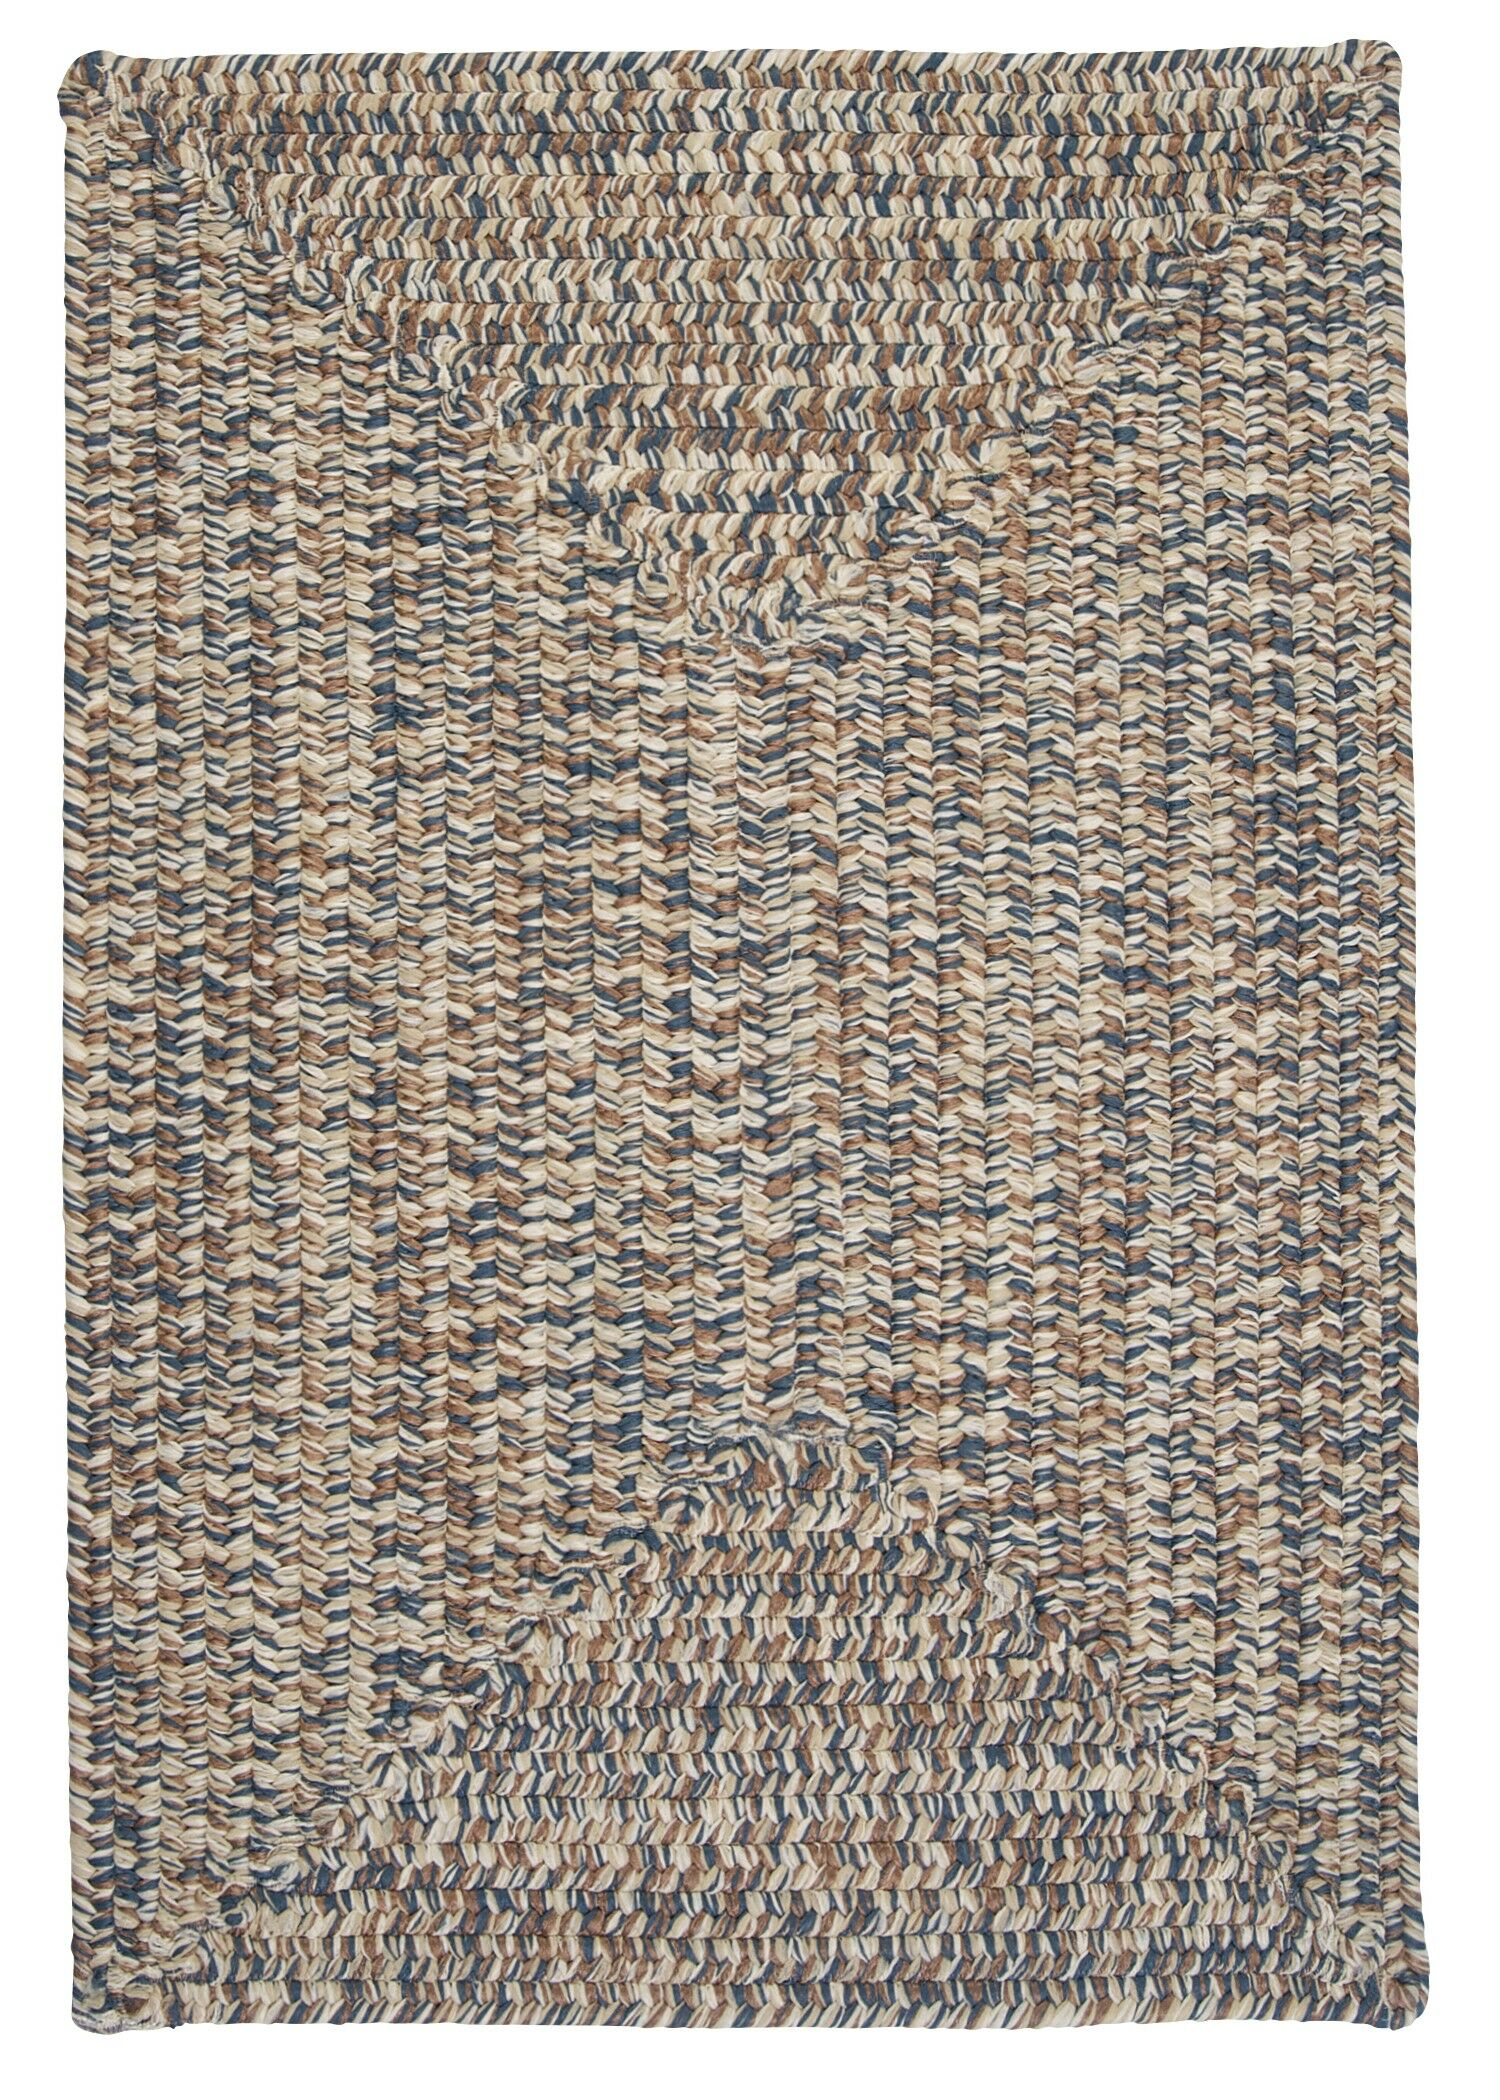 Beltran Blue Rug Rug Size: Rectangle 10' x 13'